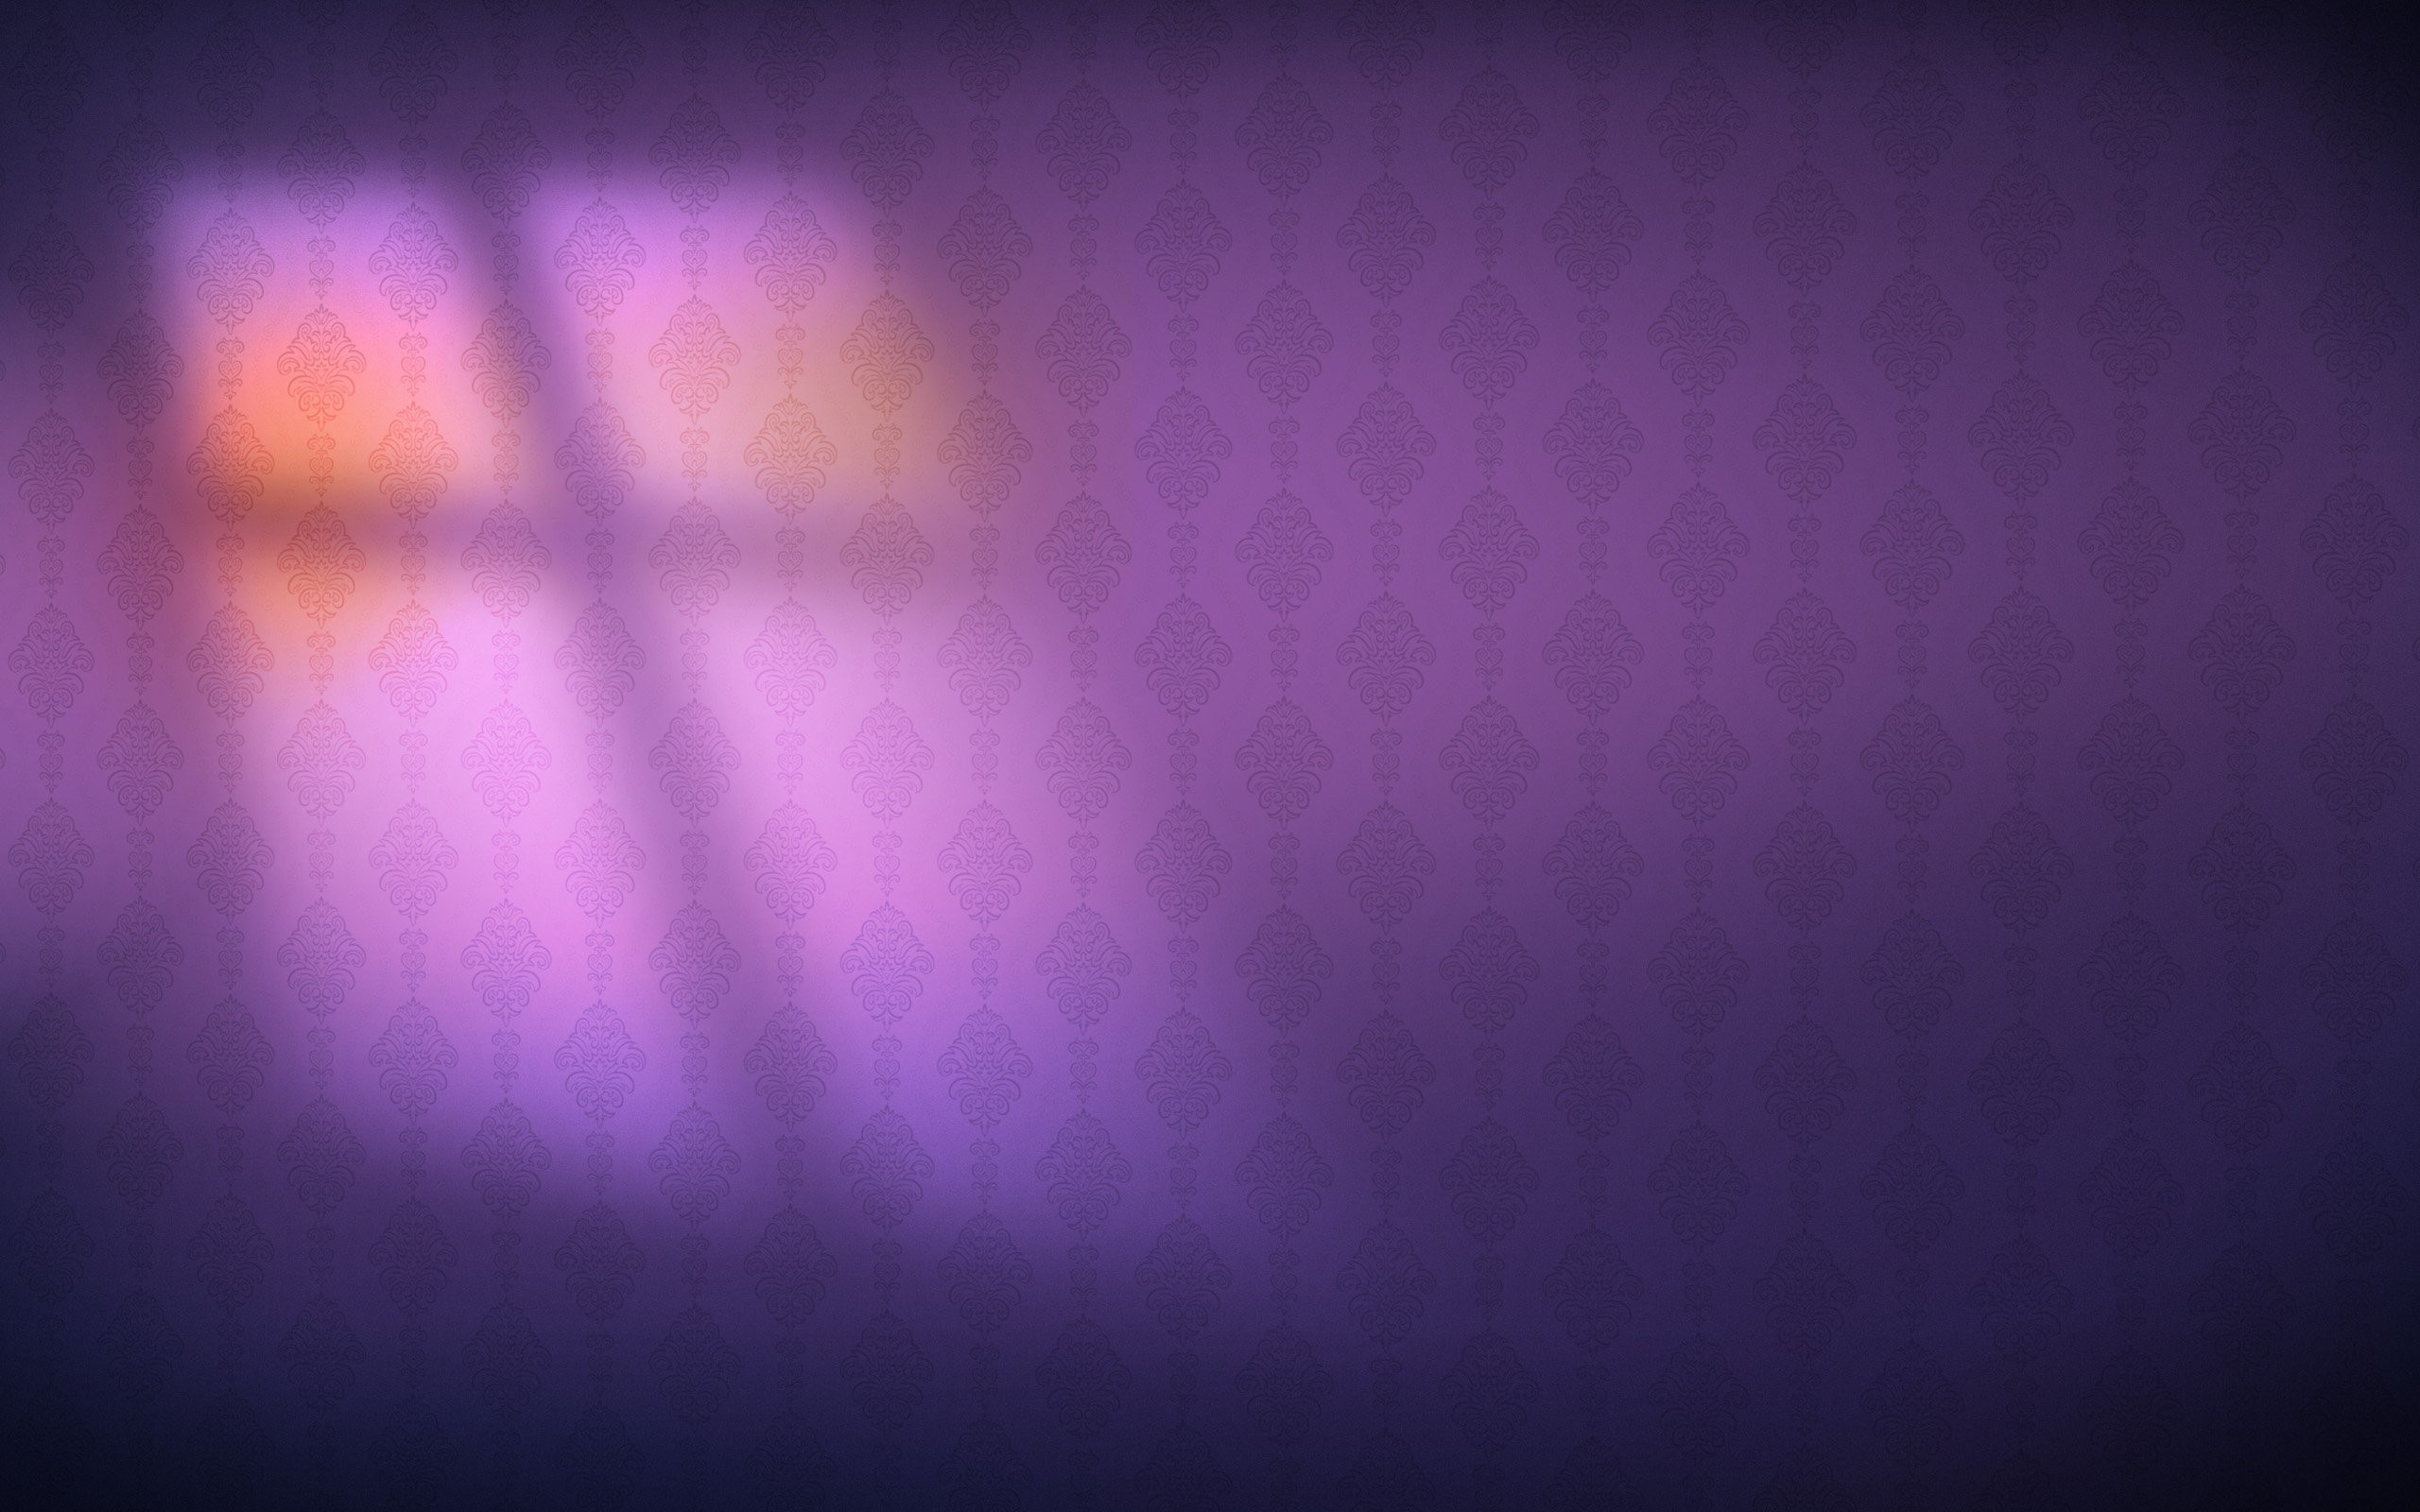 Background Nice Purple Ground Back free iPhone or Android Full HD wallpaper.